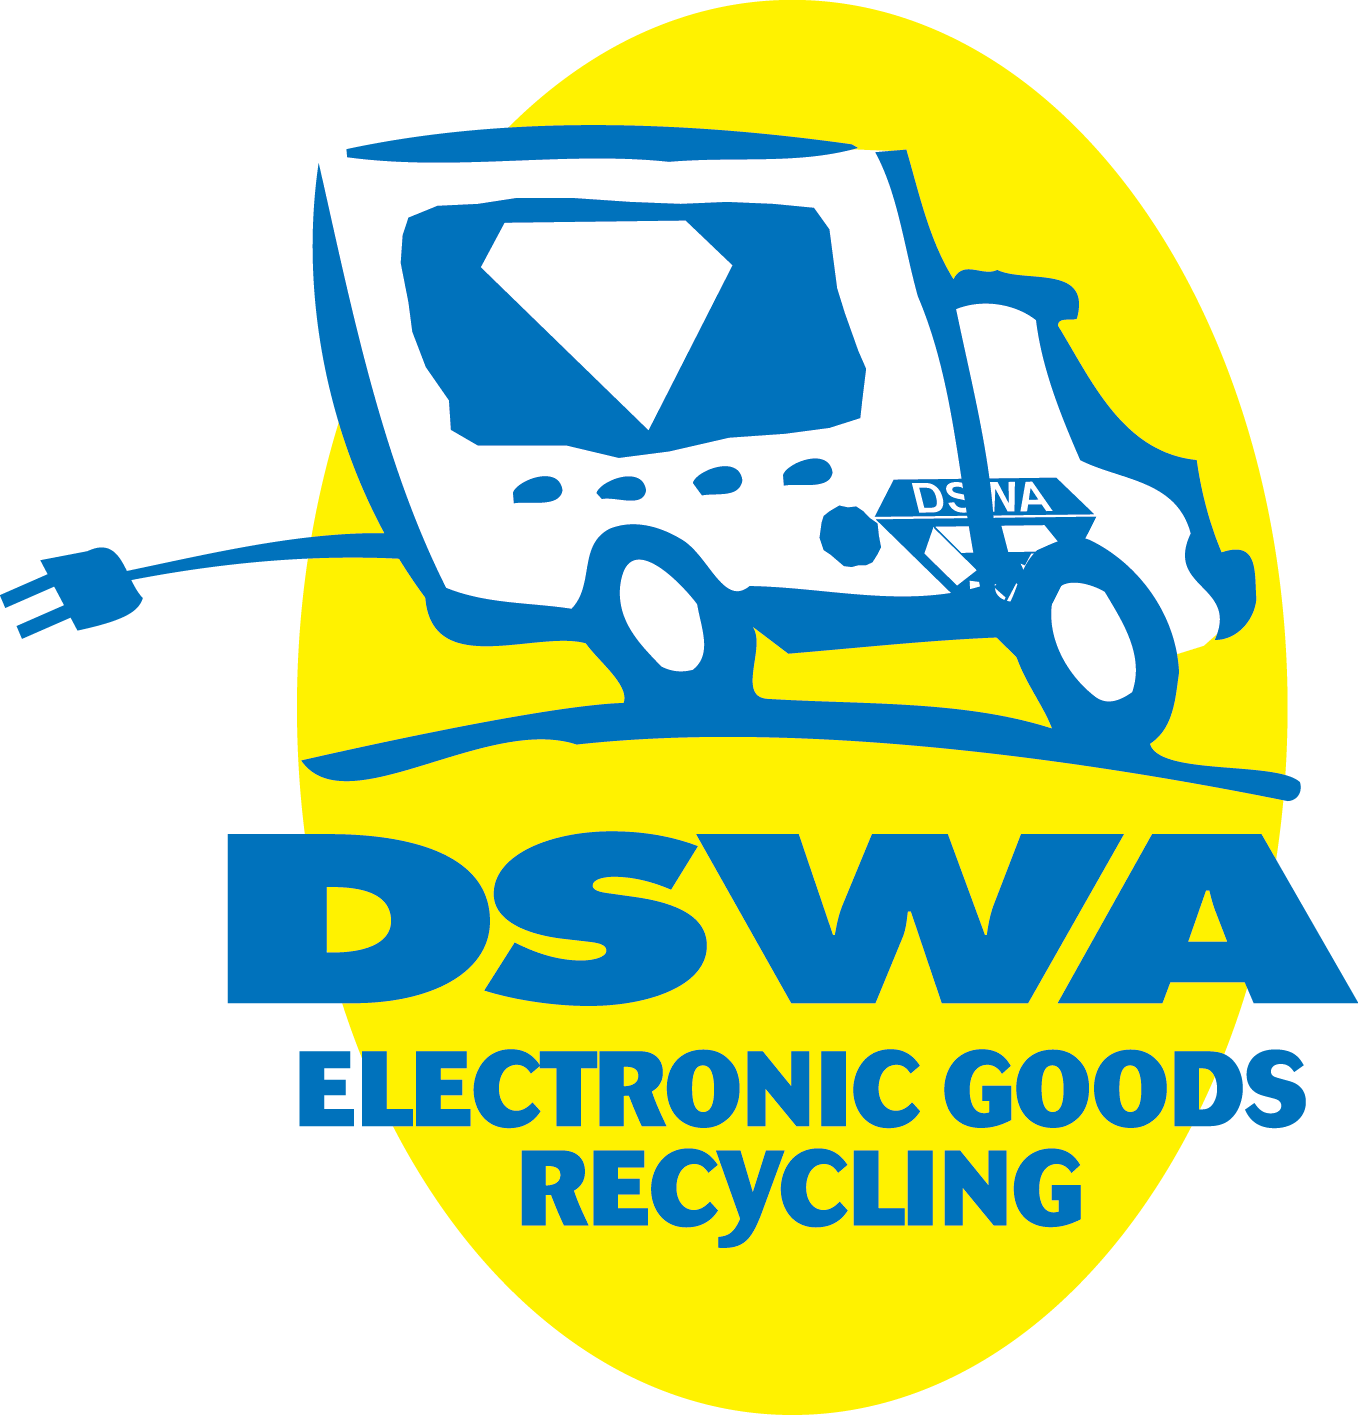 Electronics clipart e waste. Electronic goods recycling dswa